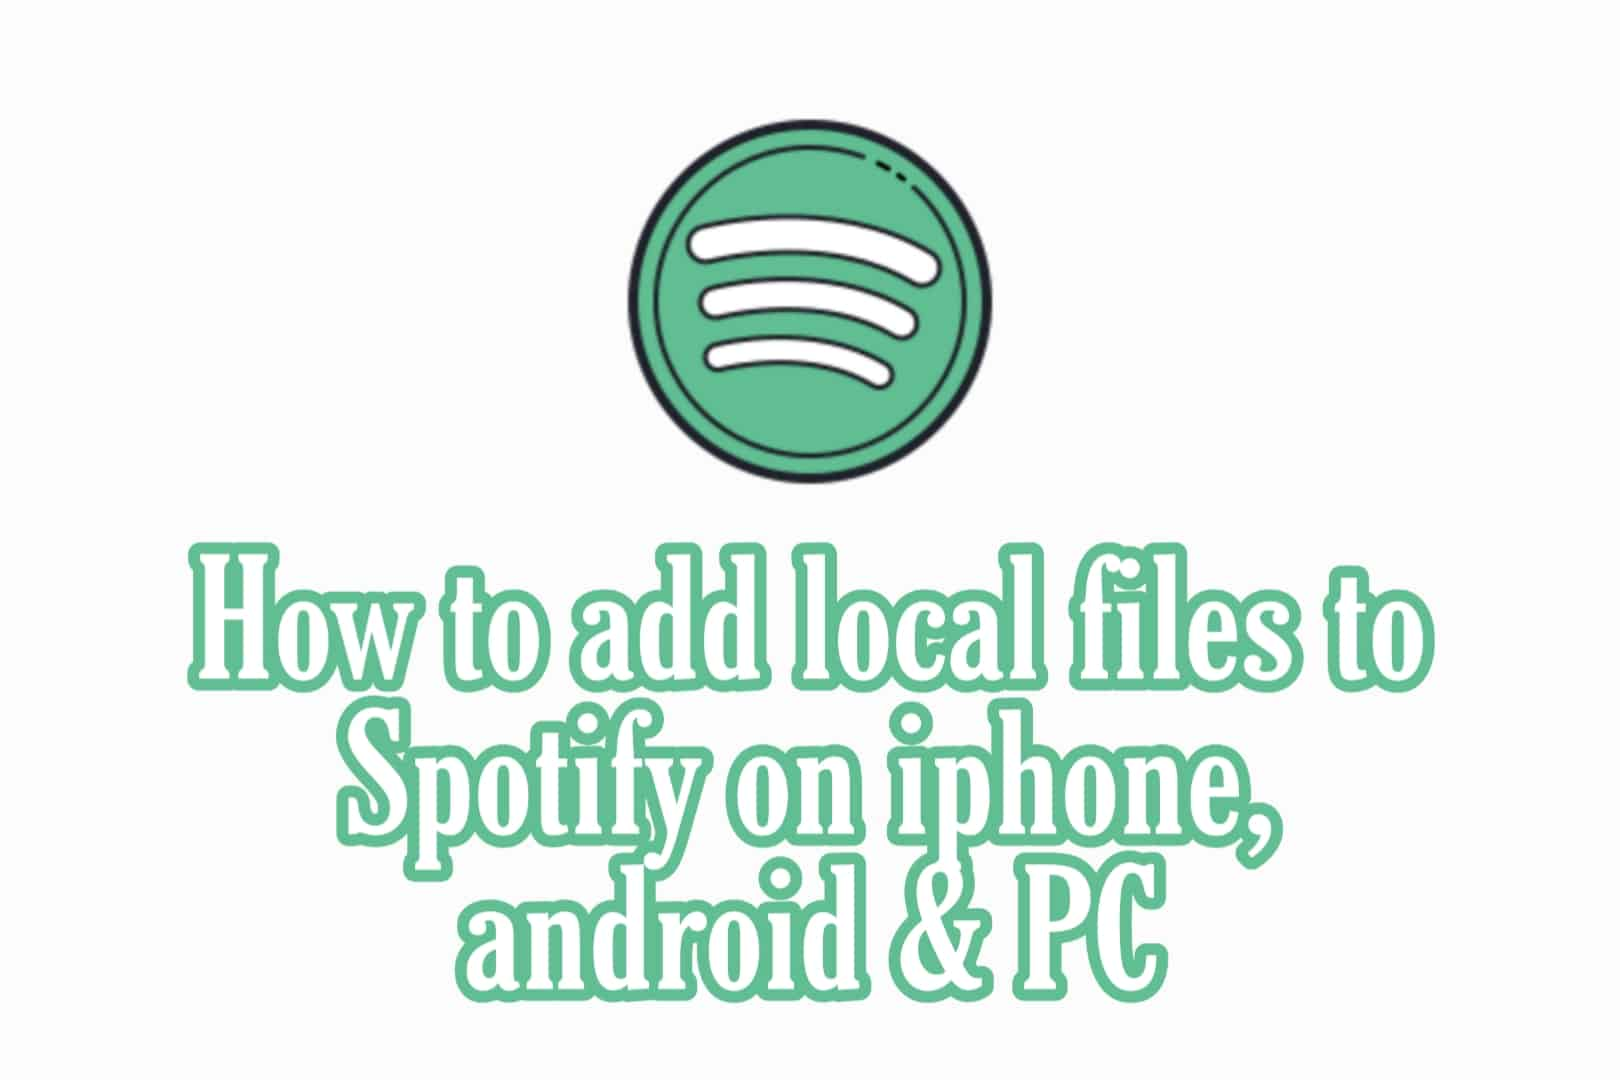 How to add local files to Spotify iPhone, Android & PC